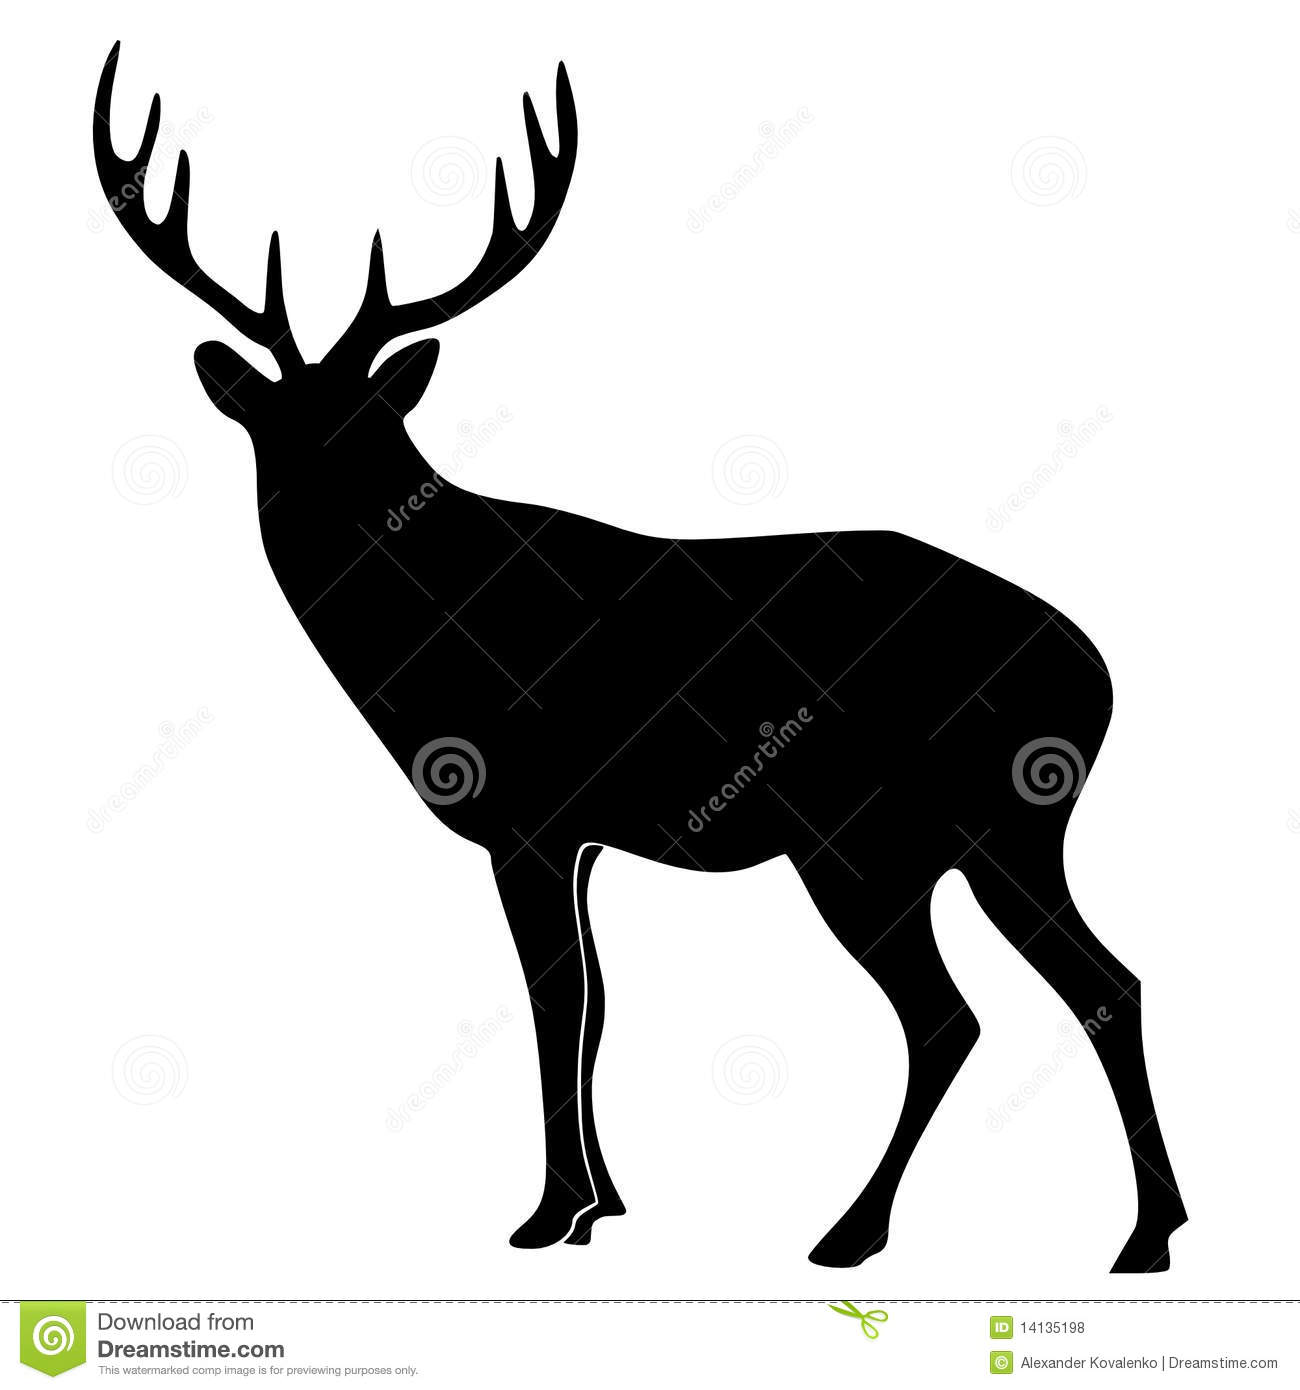 Silhouette Of Deer Royalty Free Stock Photos - Image: 14135198